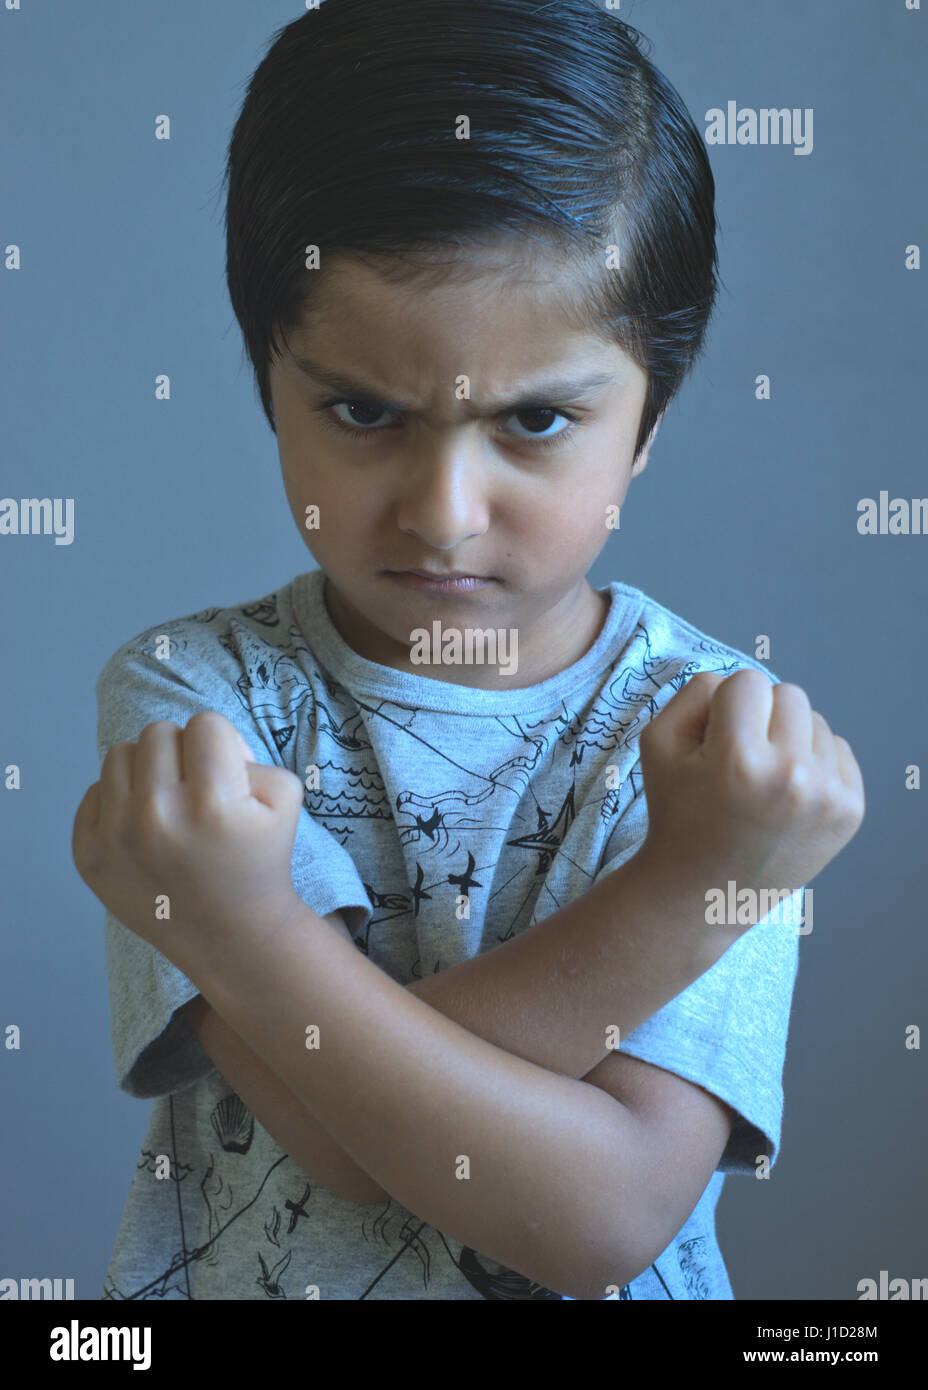 Angry kid ready to fight. Kid crossing arms and showing fists. Unhappy child. Difficult kid. - Stock Image